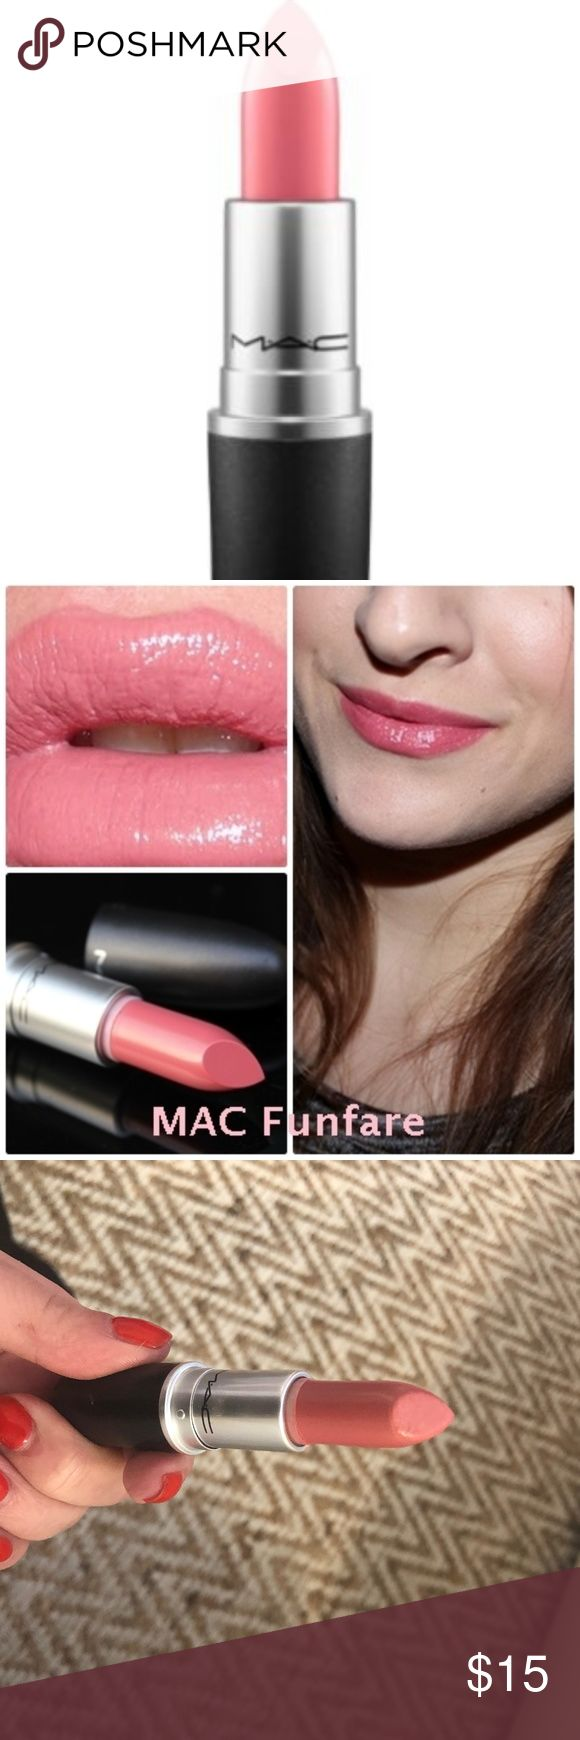 MAC Cremesheen Lipstick - Fanfare Used only once!   Creamy balmy formula with a comforting feel, medium buildable coverage, semi-glossy finish.  Formulated to shade, define, and showcase the lips. Hundreds of hues, high-fashion textures. The iconic product that made M·A·C famous. MAC Cosmetics Makeup Lipstick